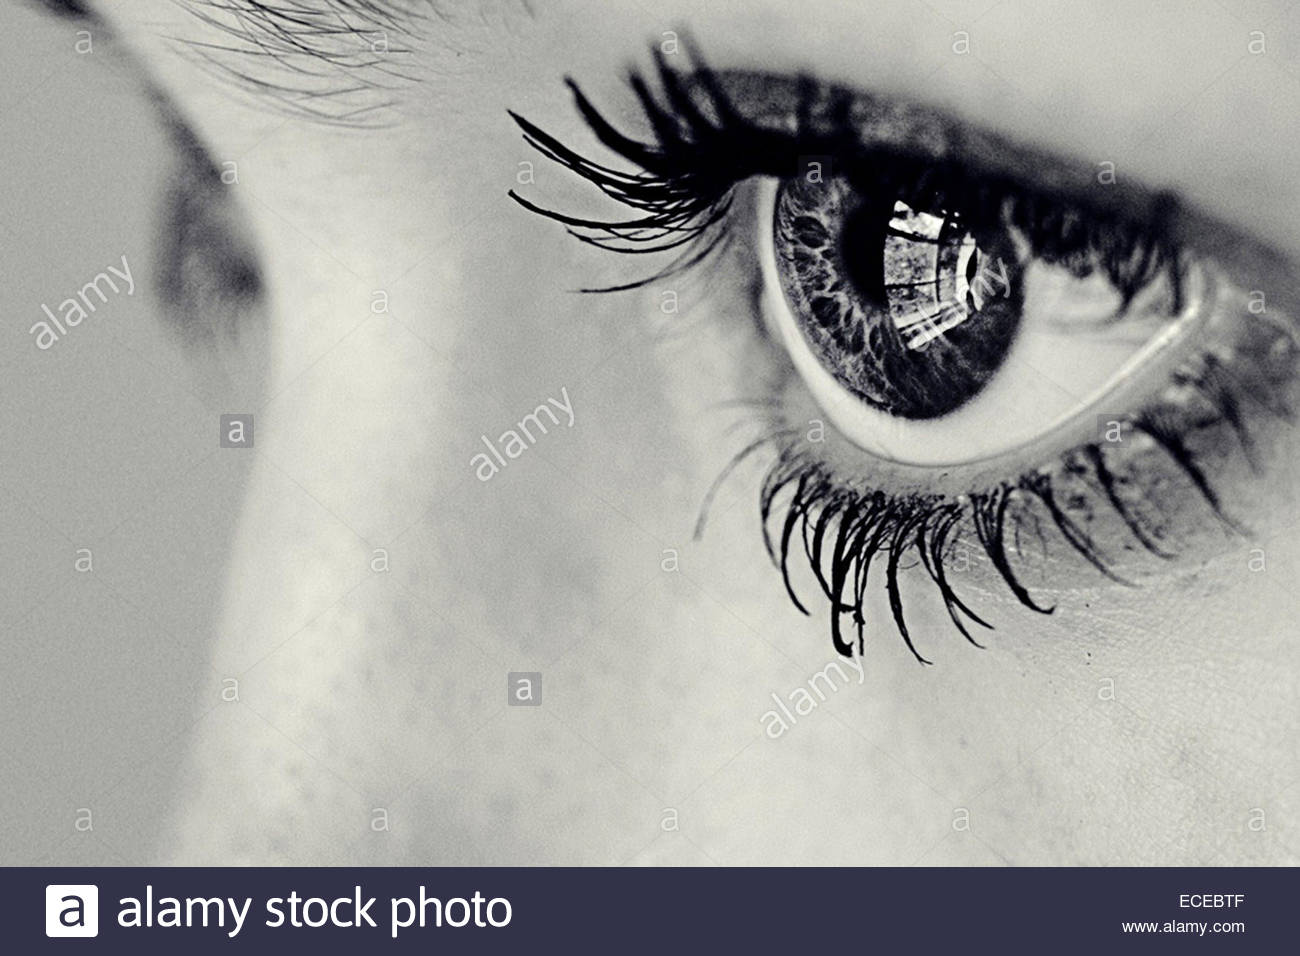 Close-up of a girl's eye with a window reflected in it - Stock Image